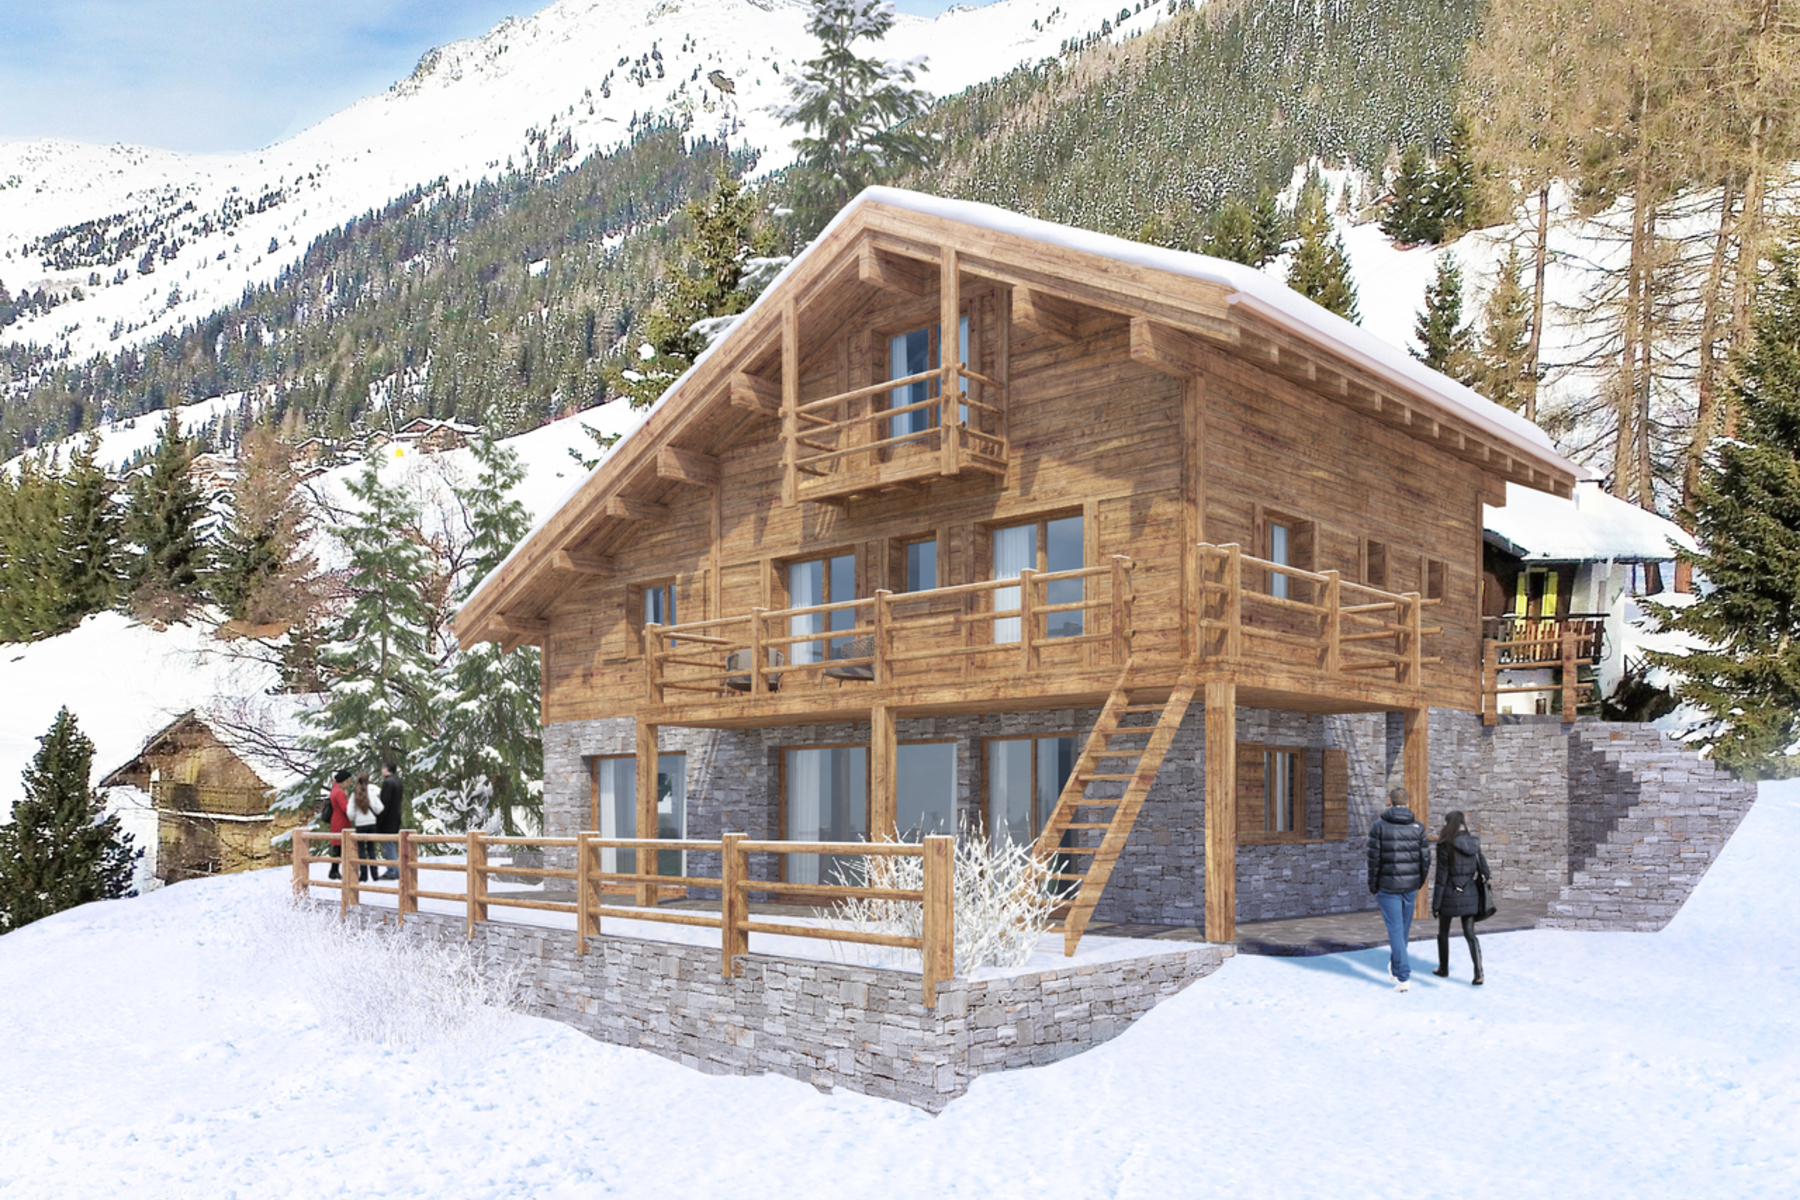 Single Family Home for Sale at Chalet PHALENES Switzerland Verbier, Valais, 1936 Switzerland